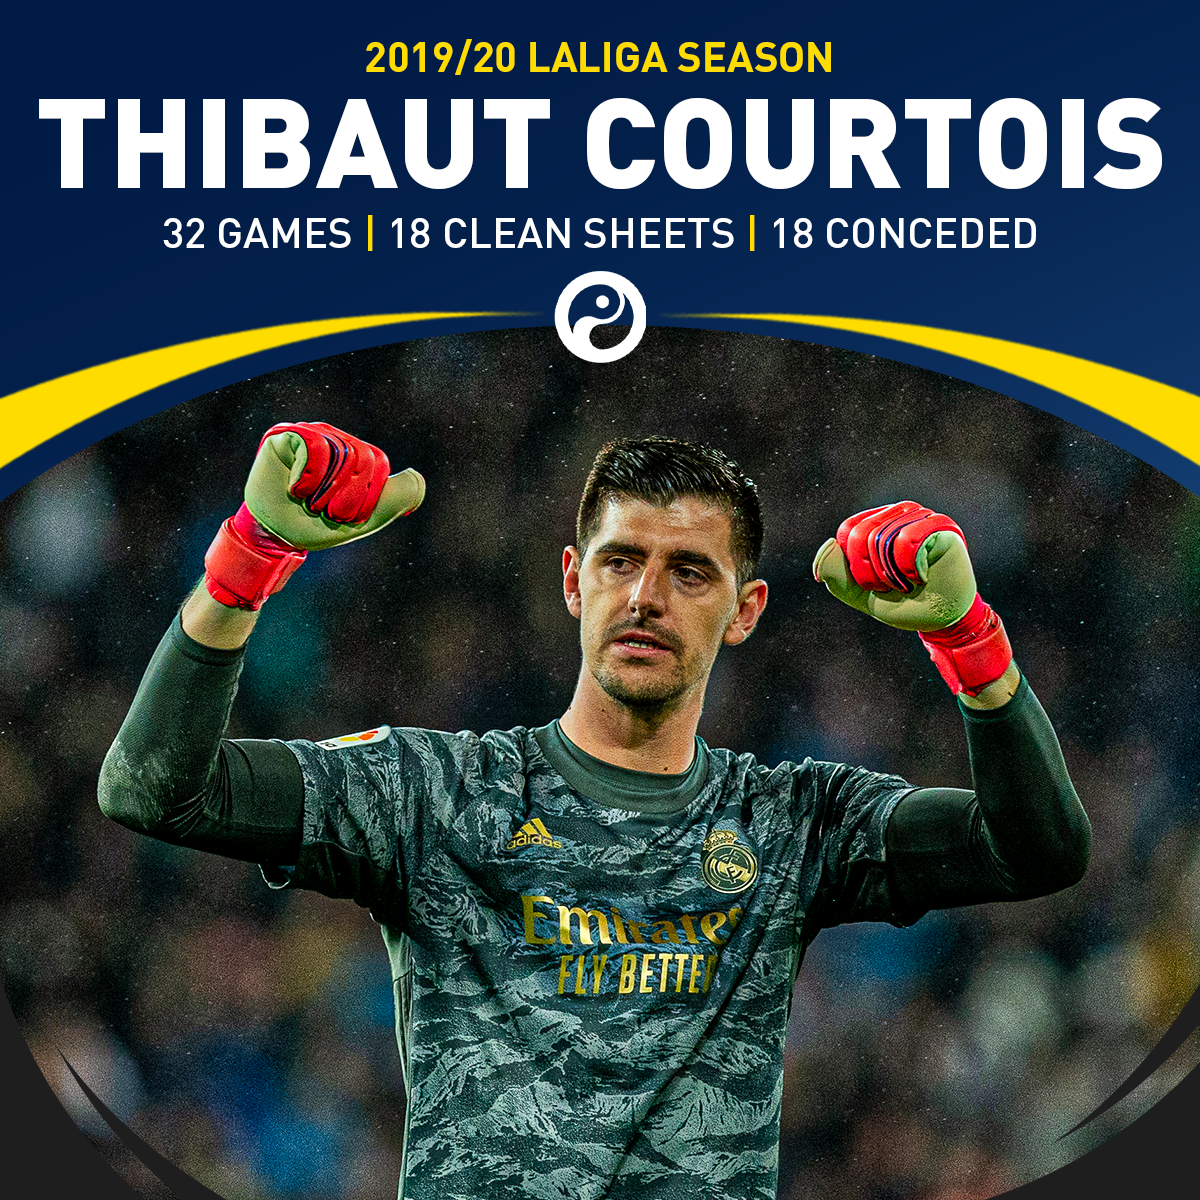 Thibaut Courtois has kept at least three more league clean sheets than any other goalkeeper in Europe's top five divisions this season:  ❍ 32 games ❍ 18 clean sheets ❍ 18 goals conceded  Five shut-outs in a row. ⛔️ https://t.co/JczLX6pjrh